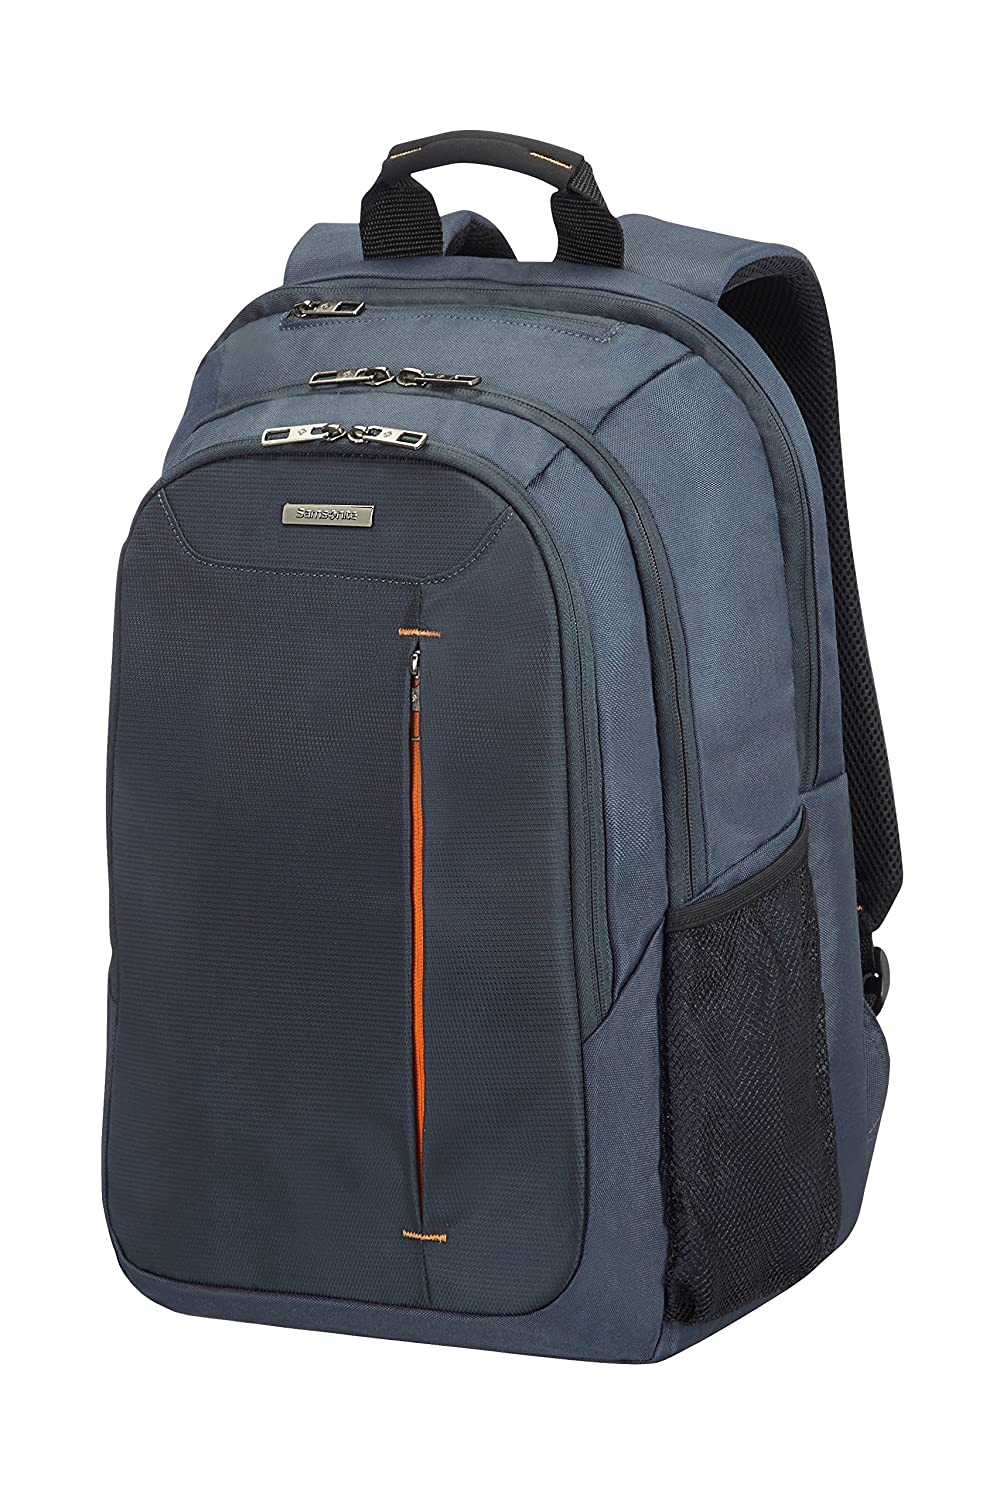 Samsonite Guardit  Mochilas de a diario L Color Gris